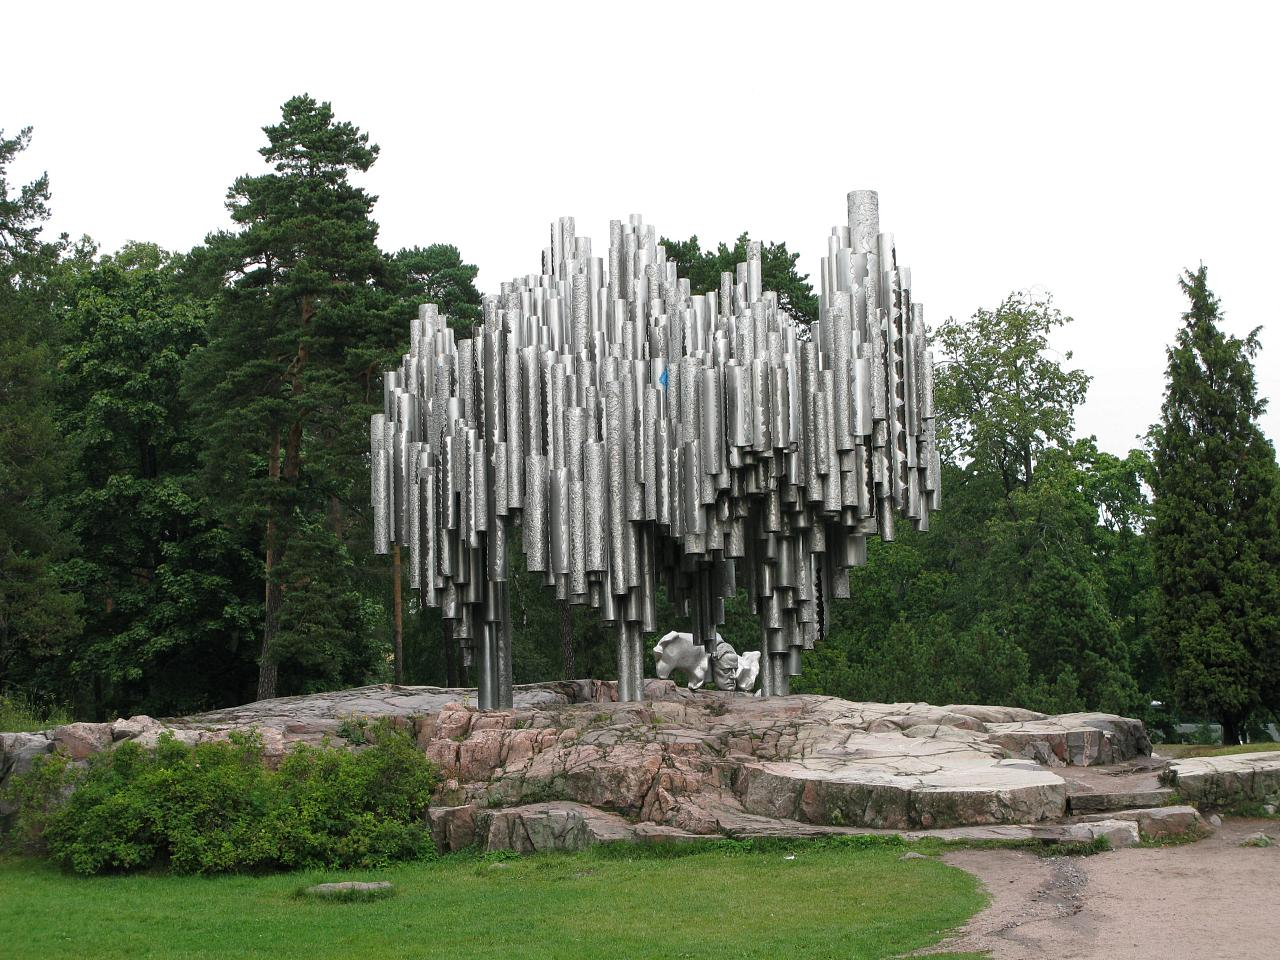 Sibelius Monument - Monument in Helsinki - Thousand Wonders